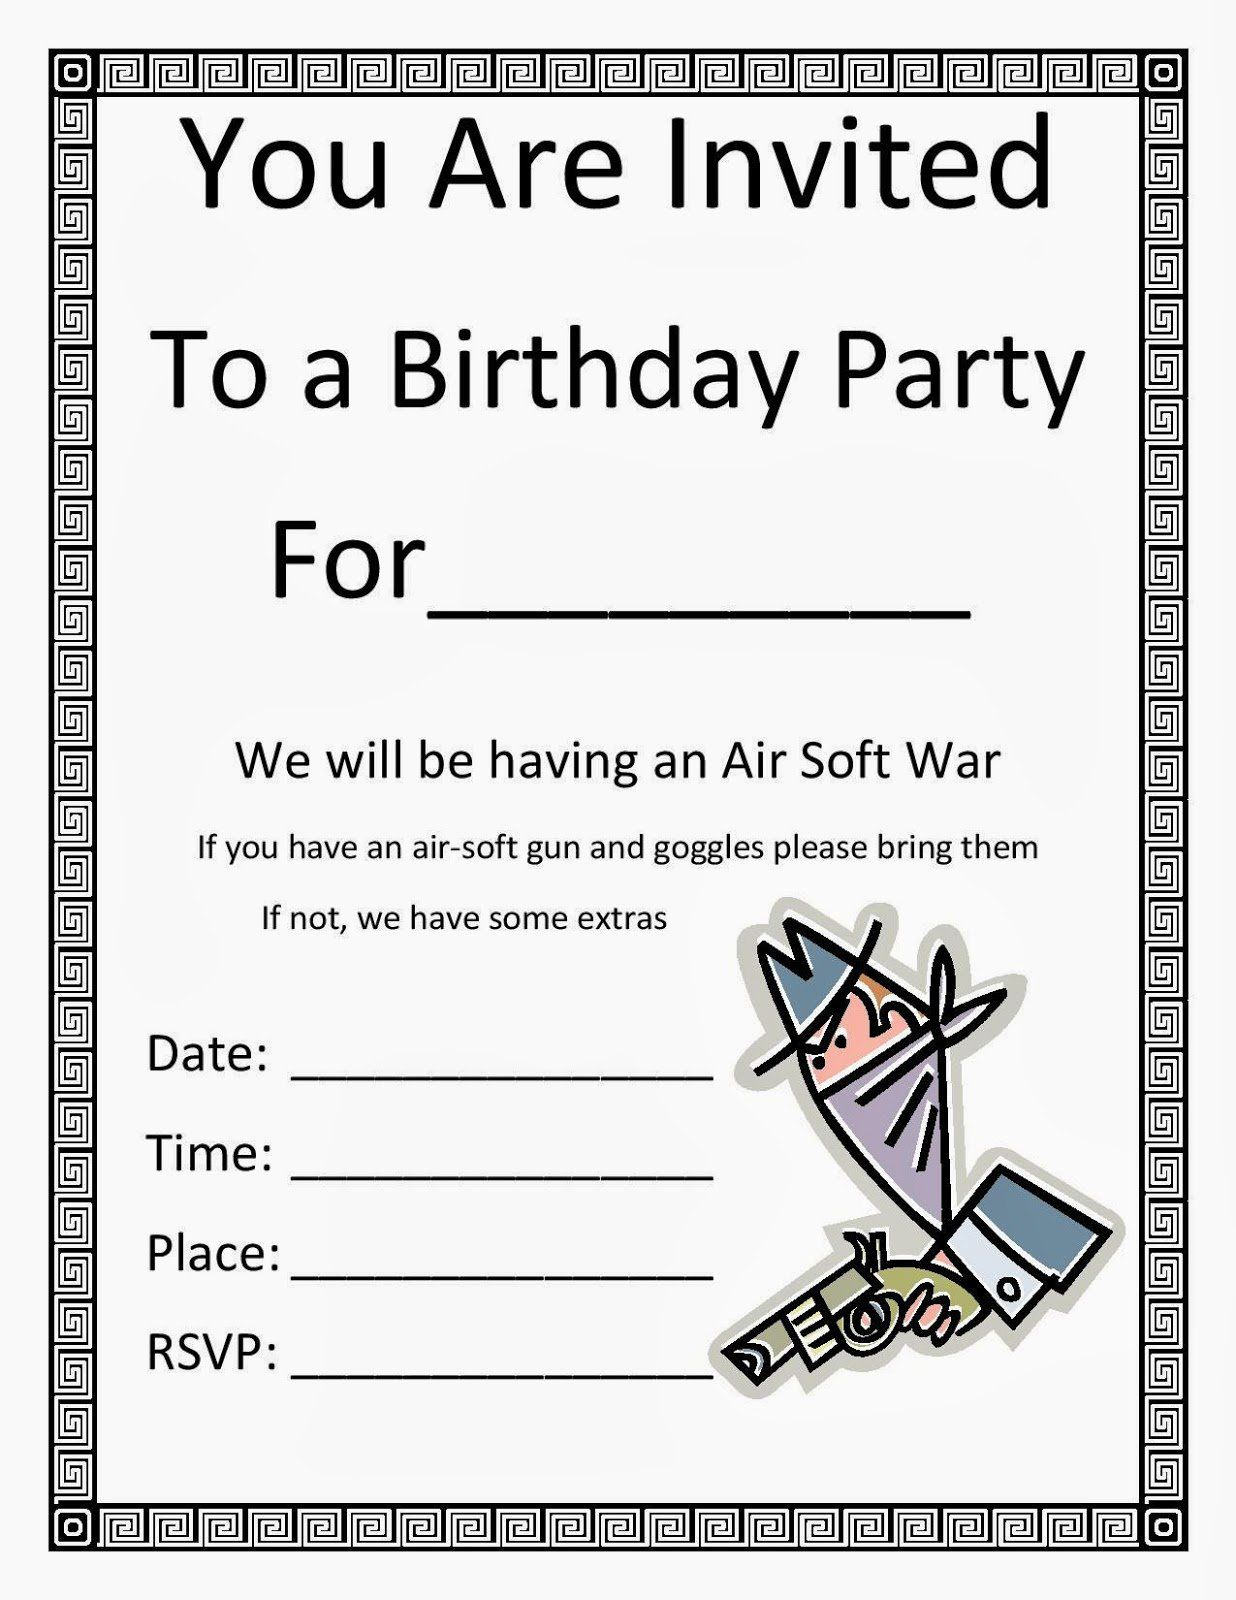 birthday party invitation templates microsoft word | birthday ...